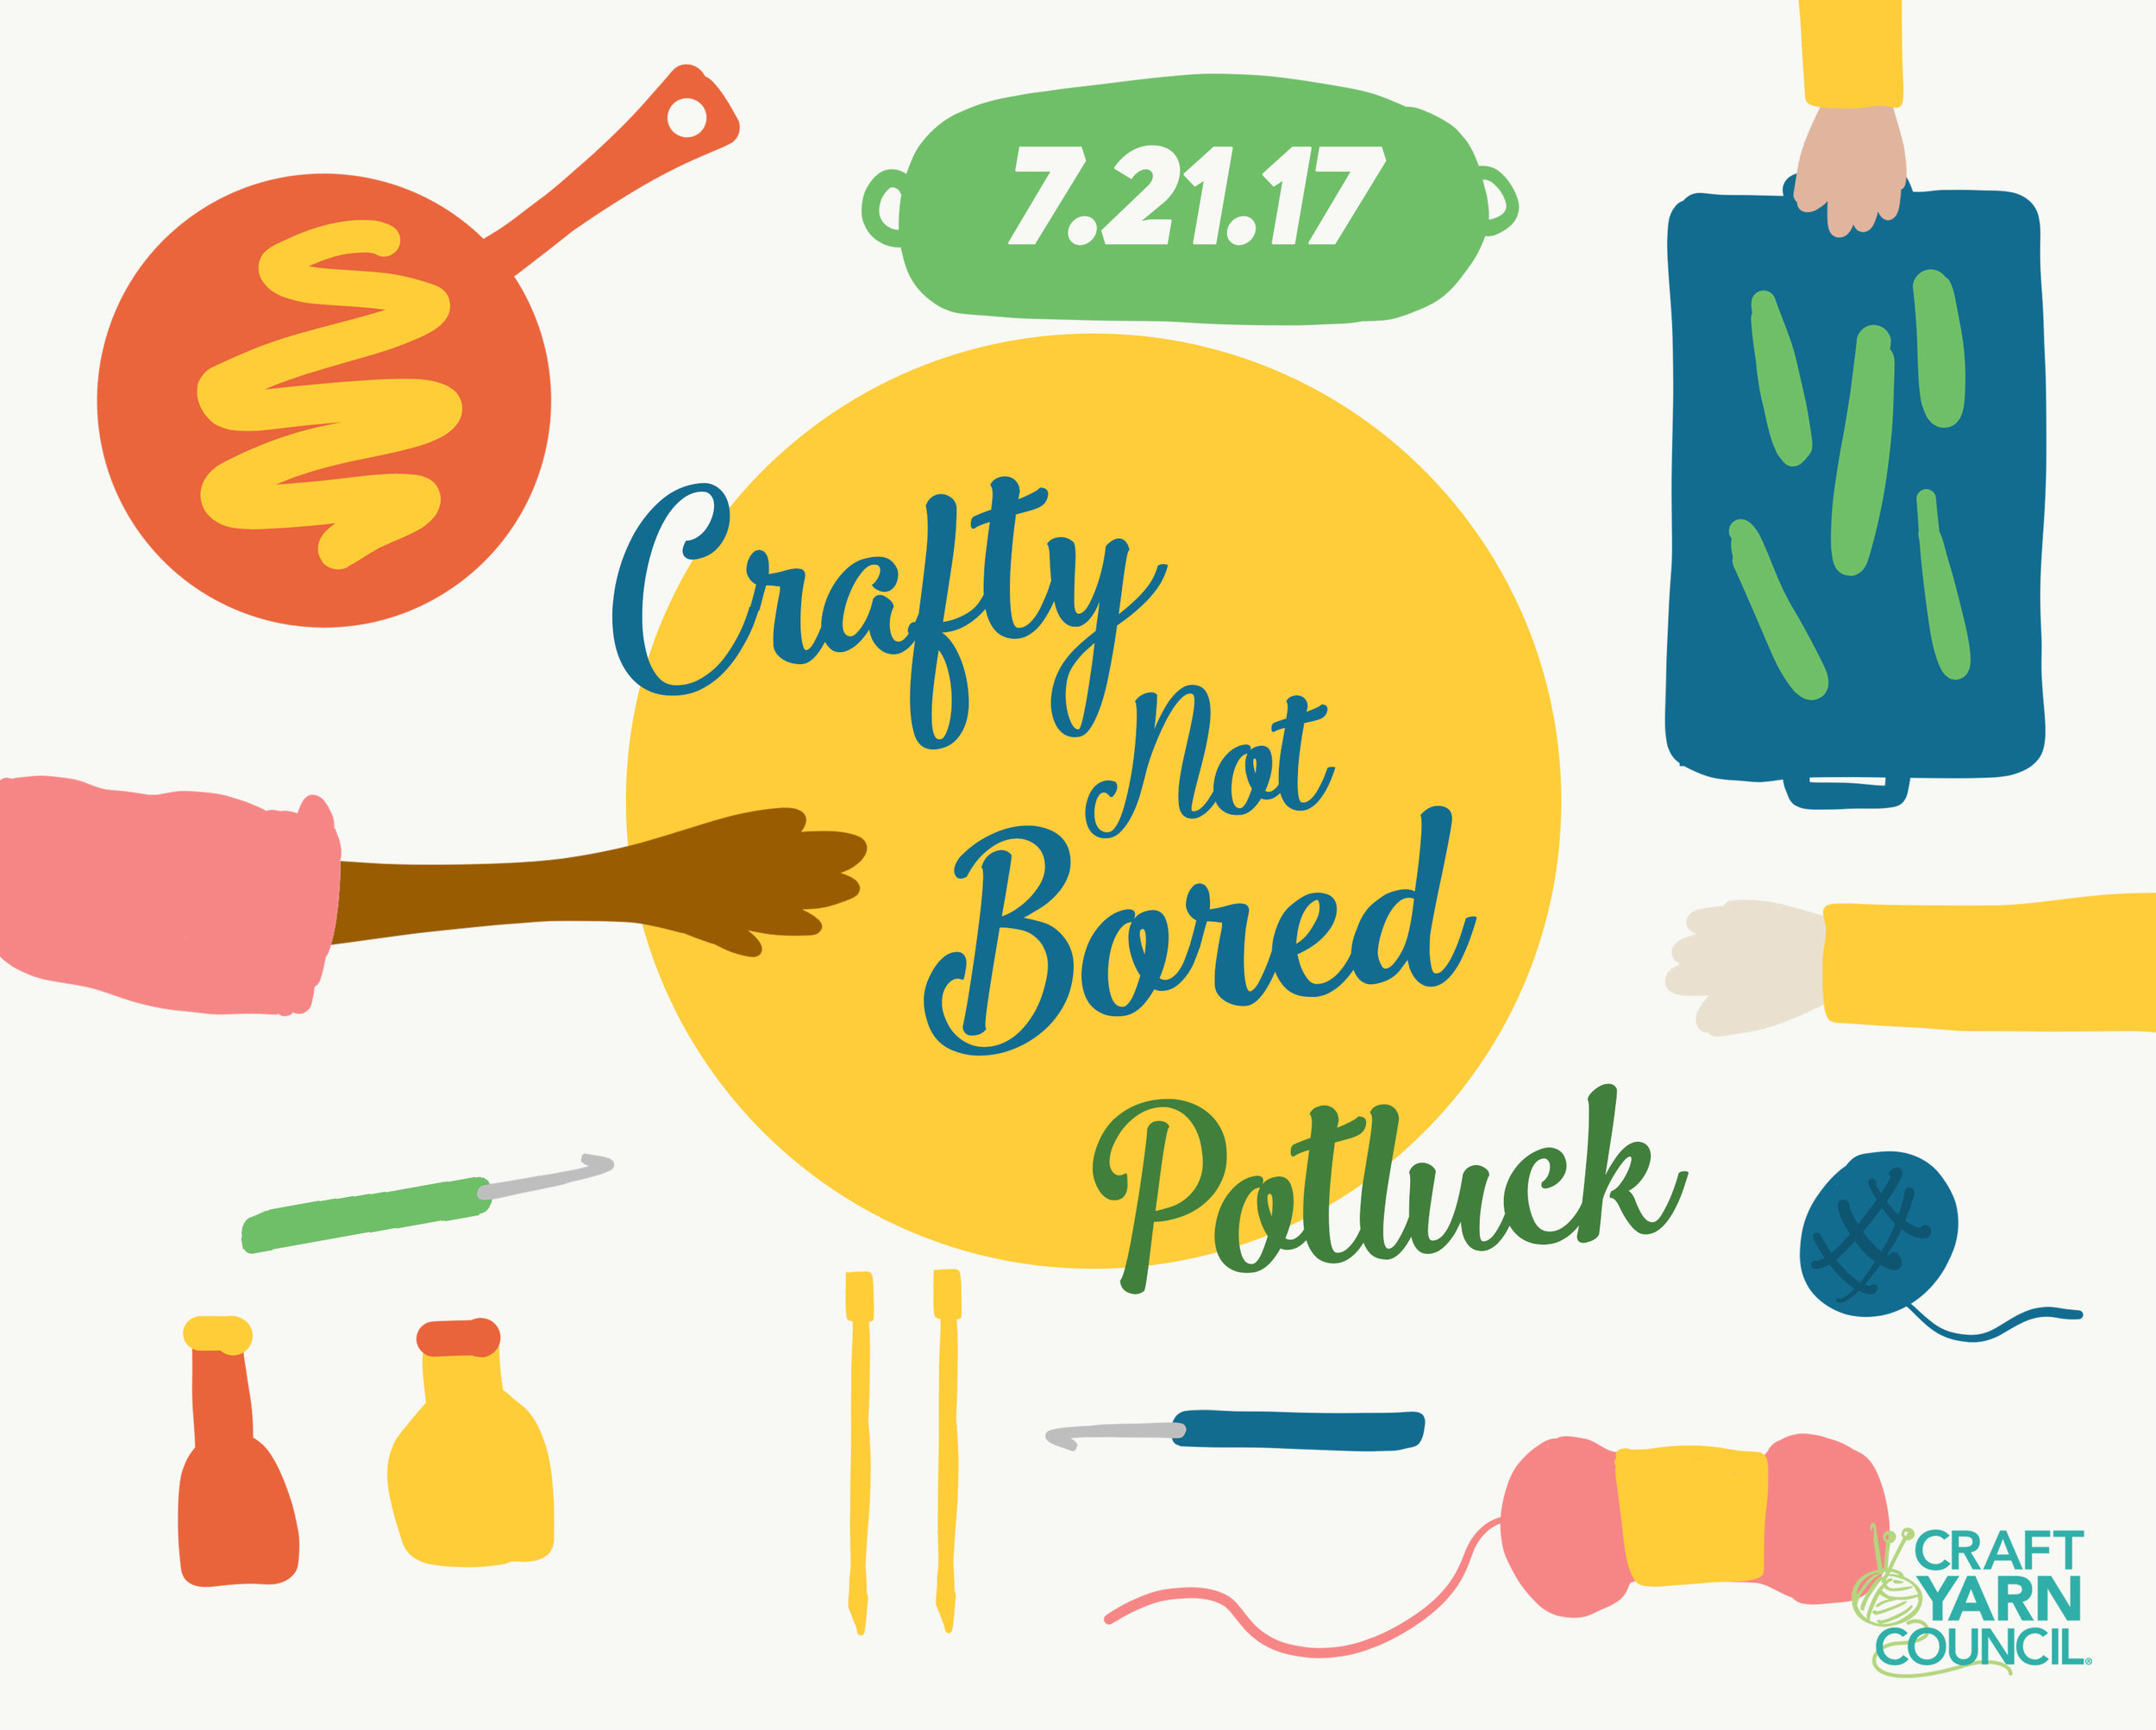 Join the potluck on July 21!